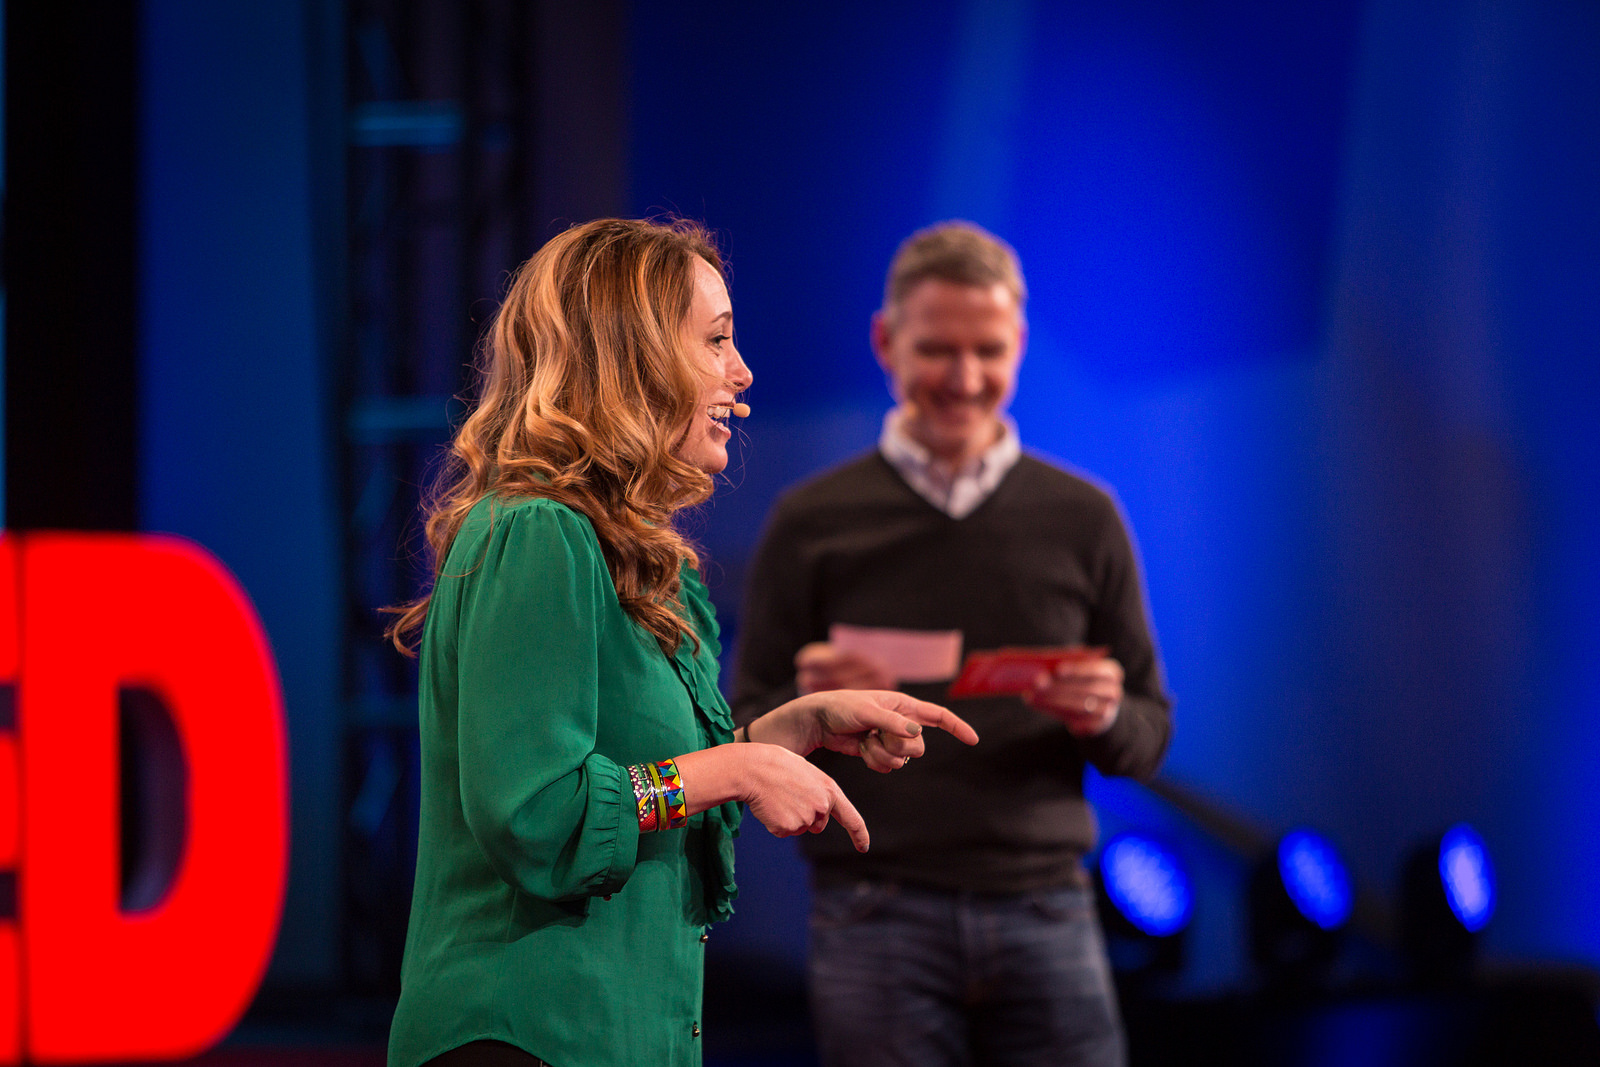 Kelly Stoetzel and Jay Herratti host TEDActive 2015, held in parallel to TED in Whistler. Photo: Marla Aufmuth/TED